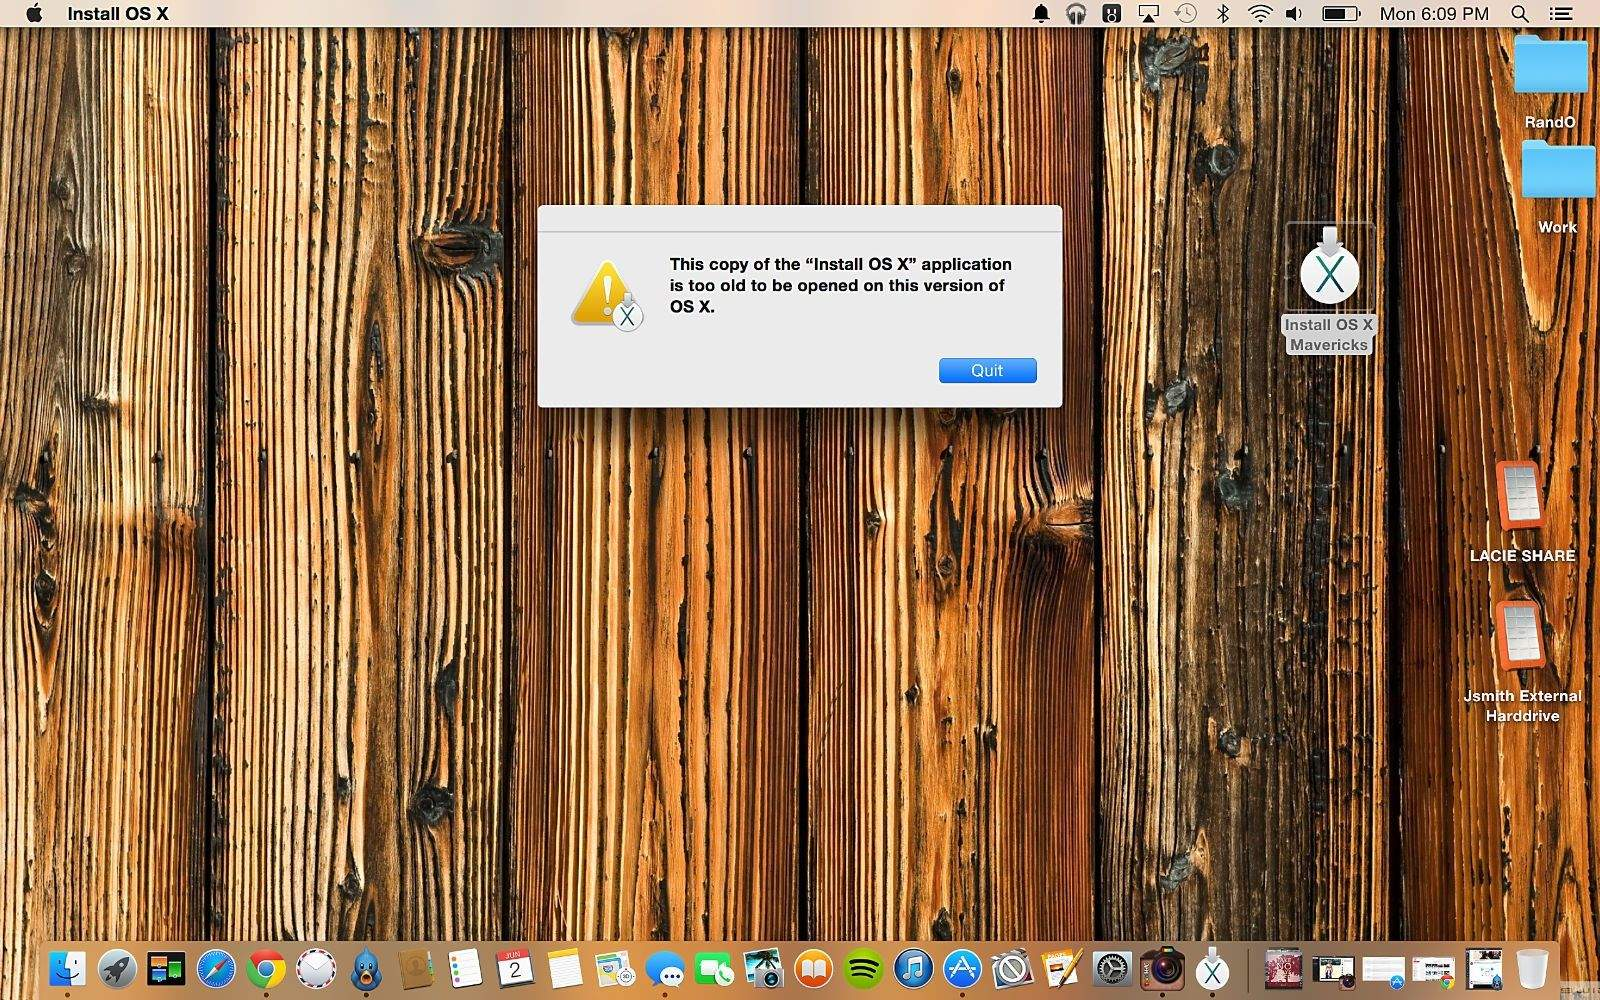 Don't let this happen to you. Screengrab and photos: Joshua Smith/Cult of Mac